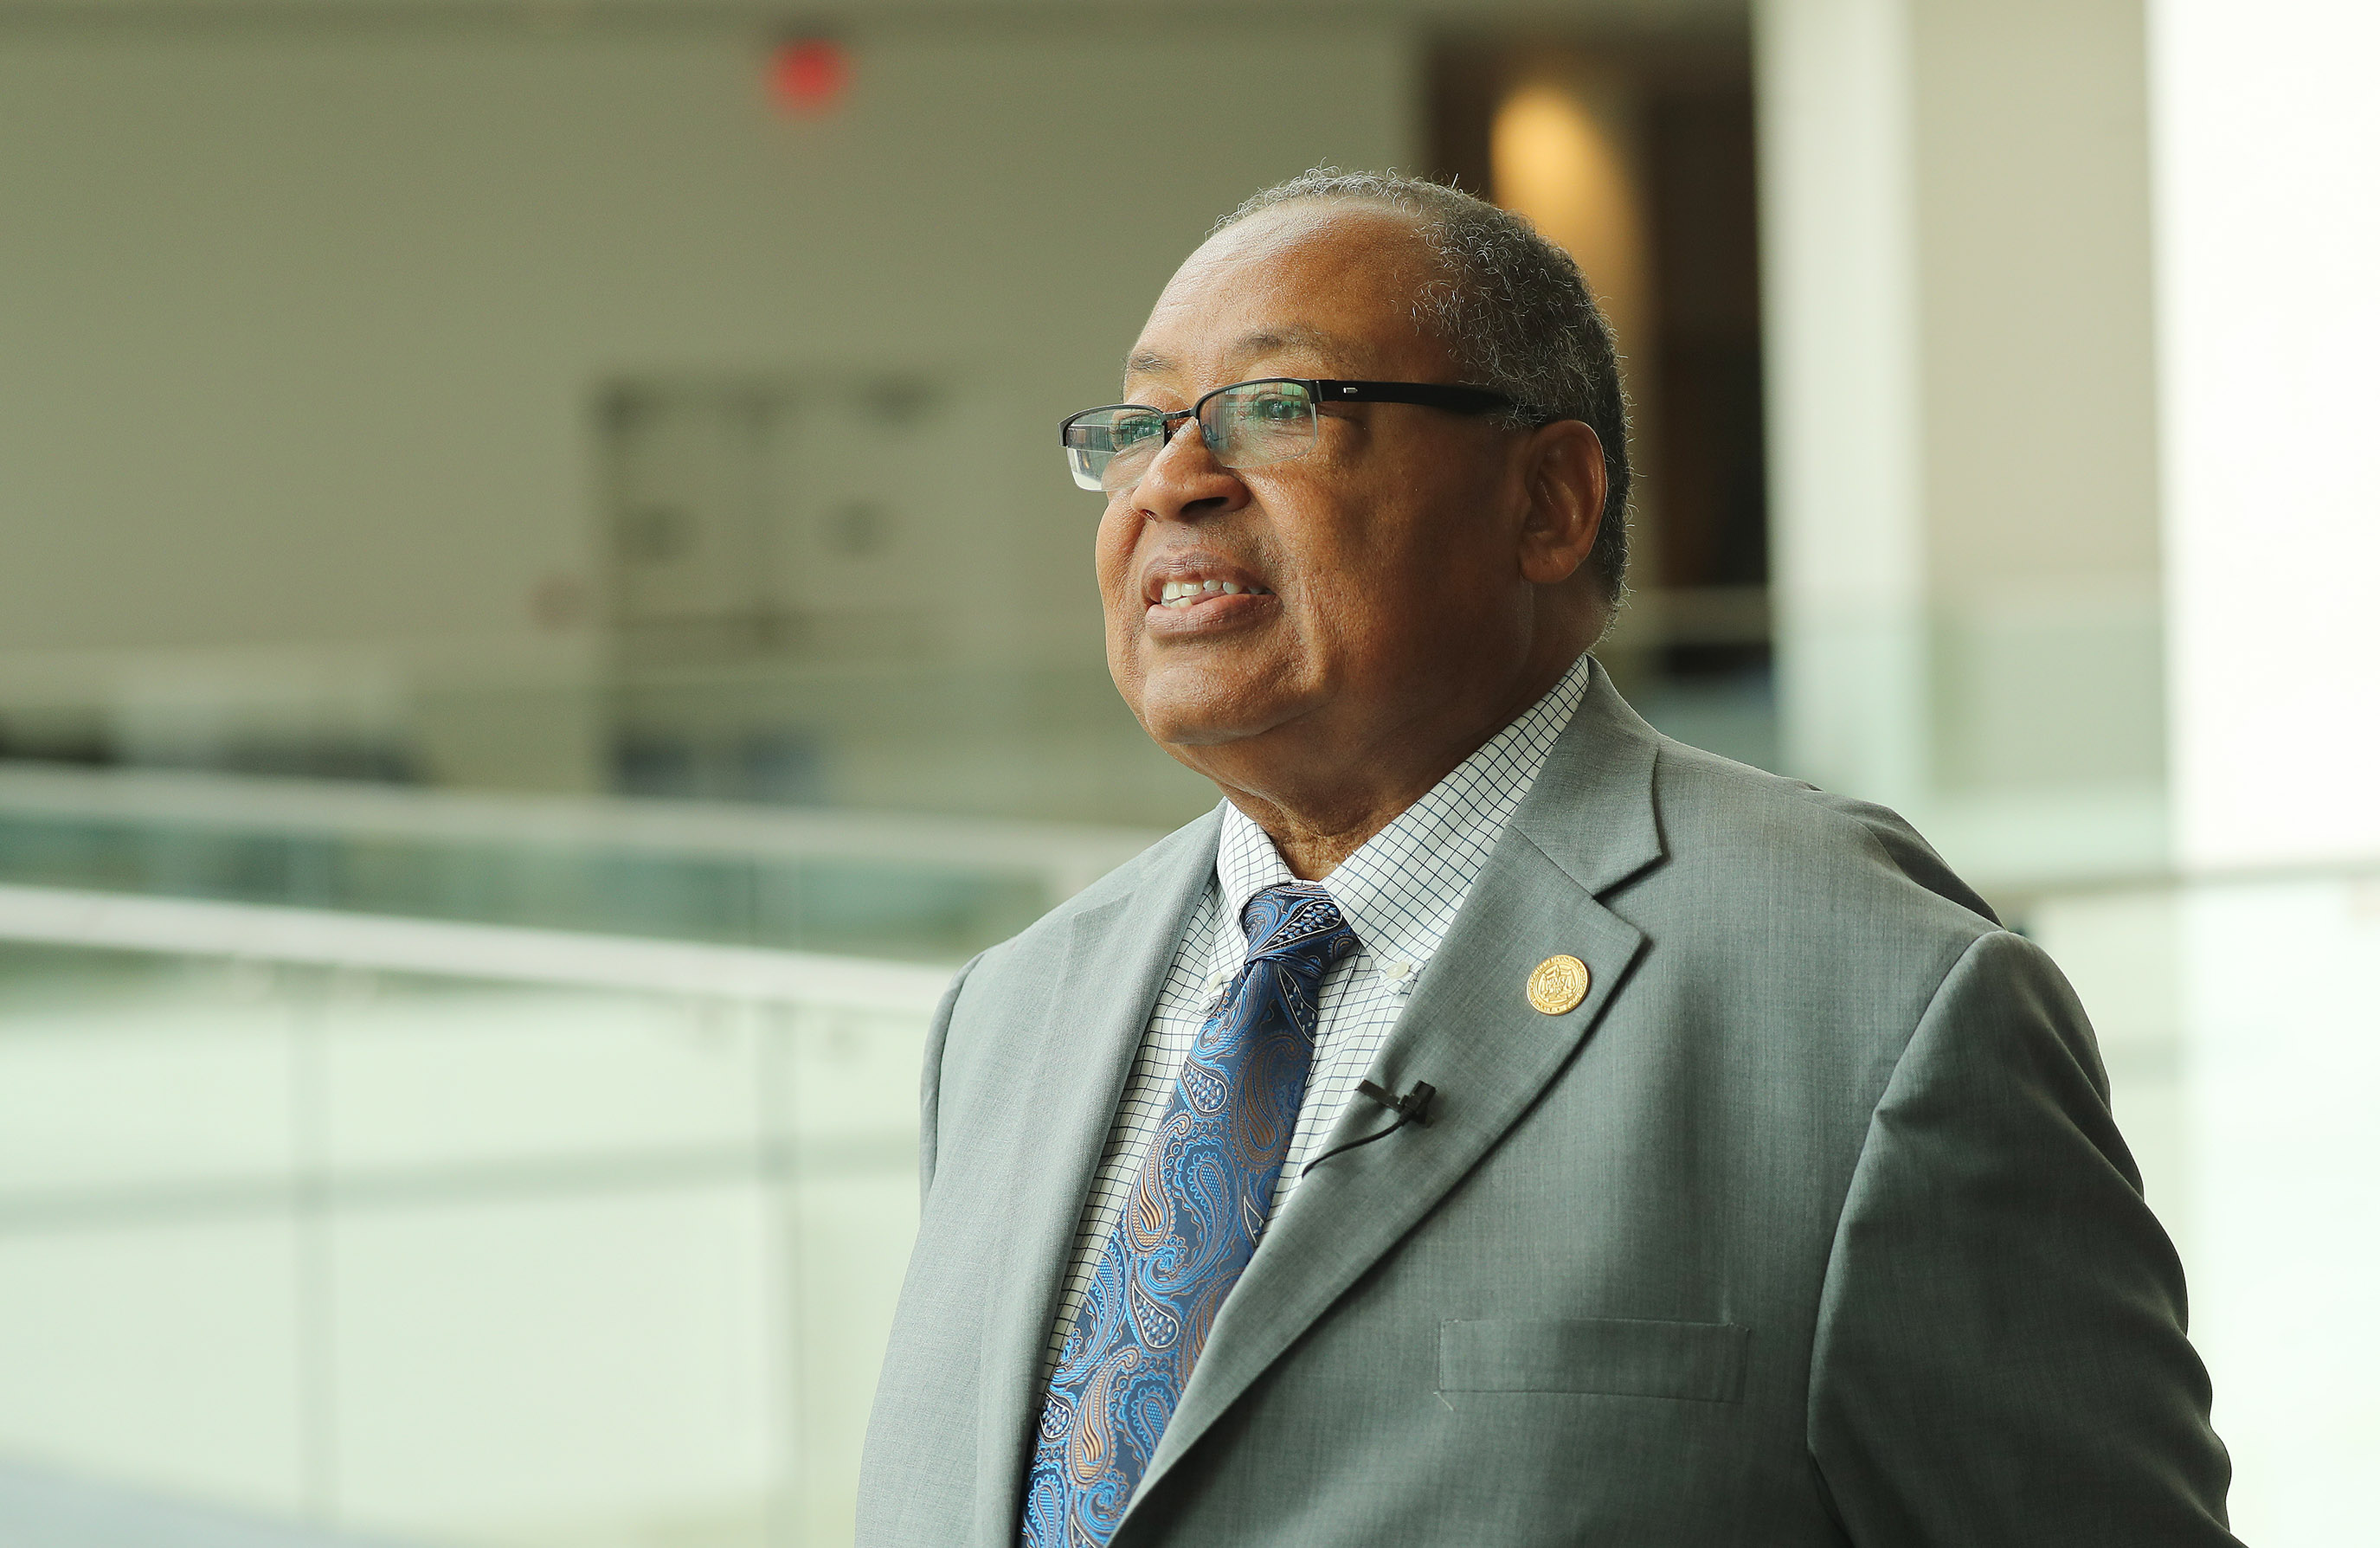 Leon W. Russell, chairman of the NAACP, is interviewed during the 110th annual national convention for the National Association for the Advancement of Colored People in Detroit, Michigan, on Sunday, July 21, 2019.